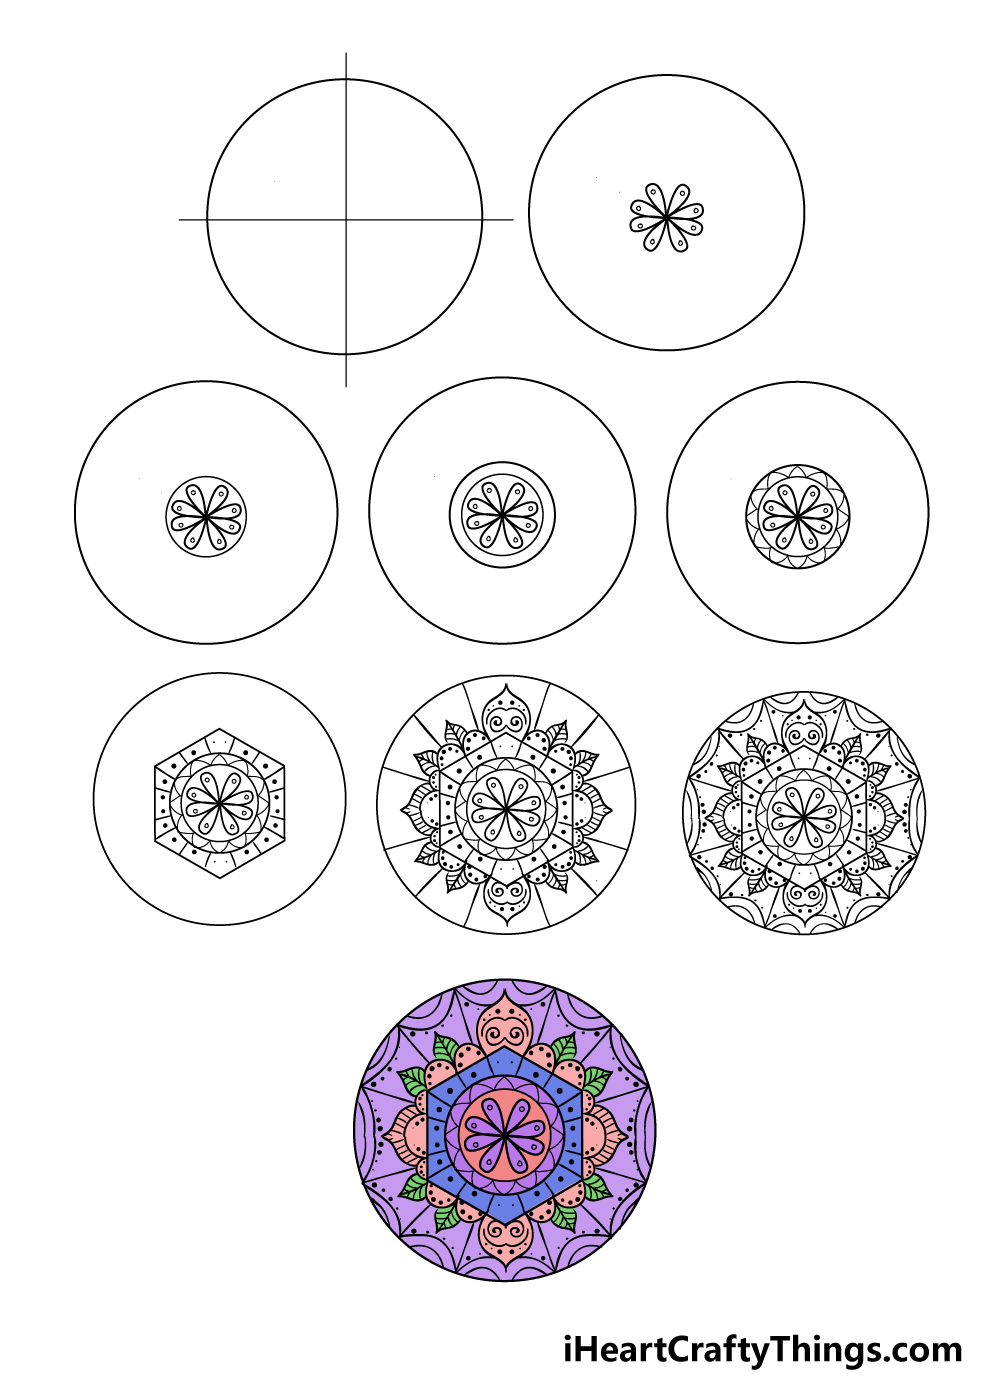 how to draw mandala in 9 steps